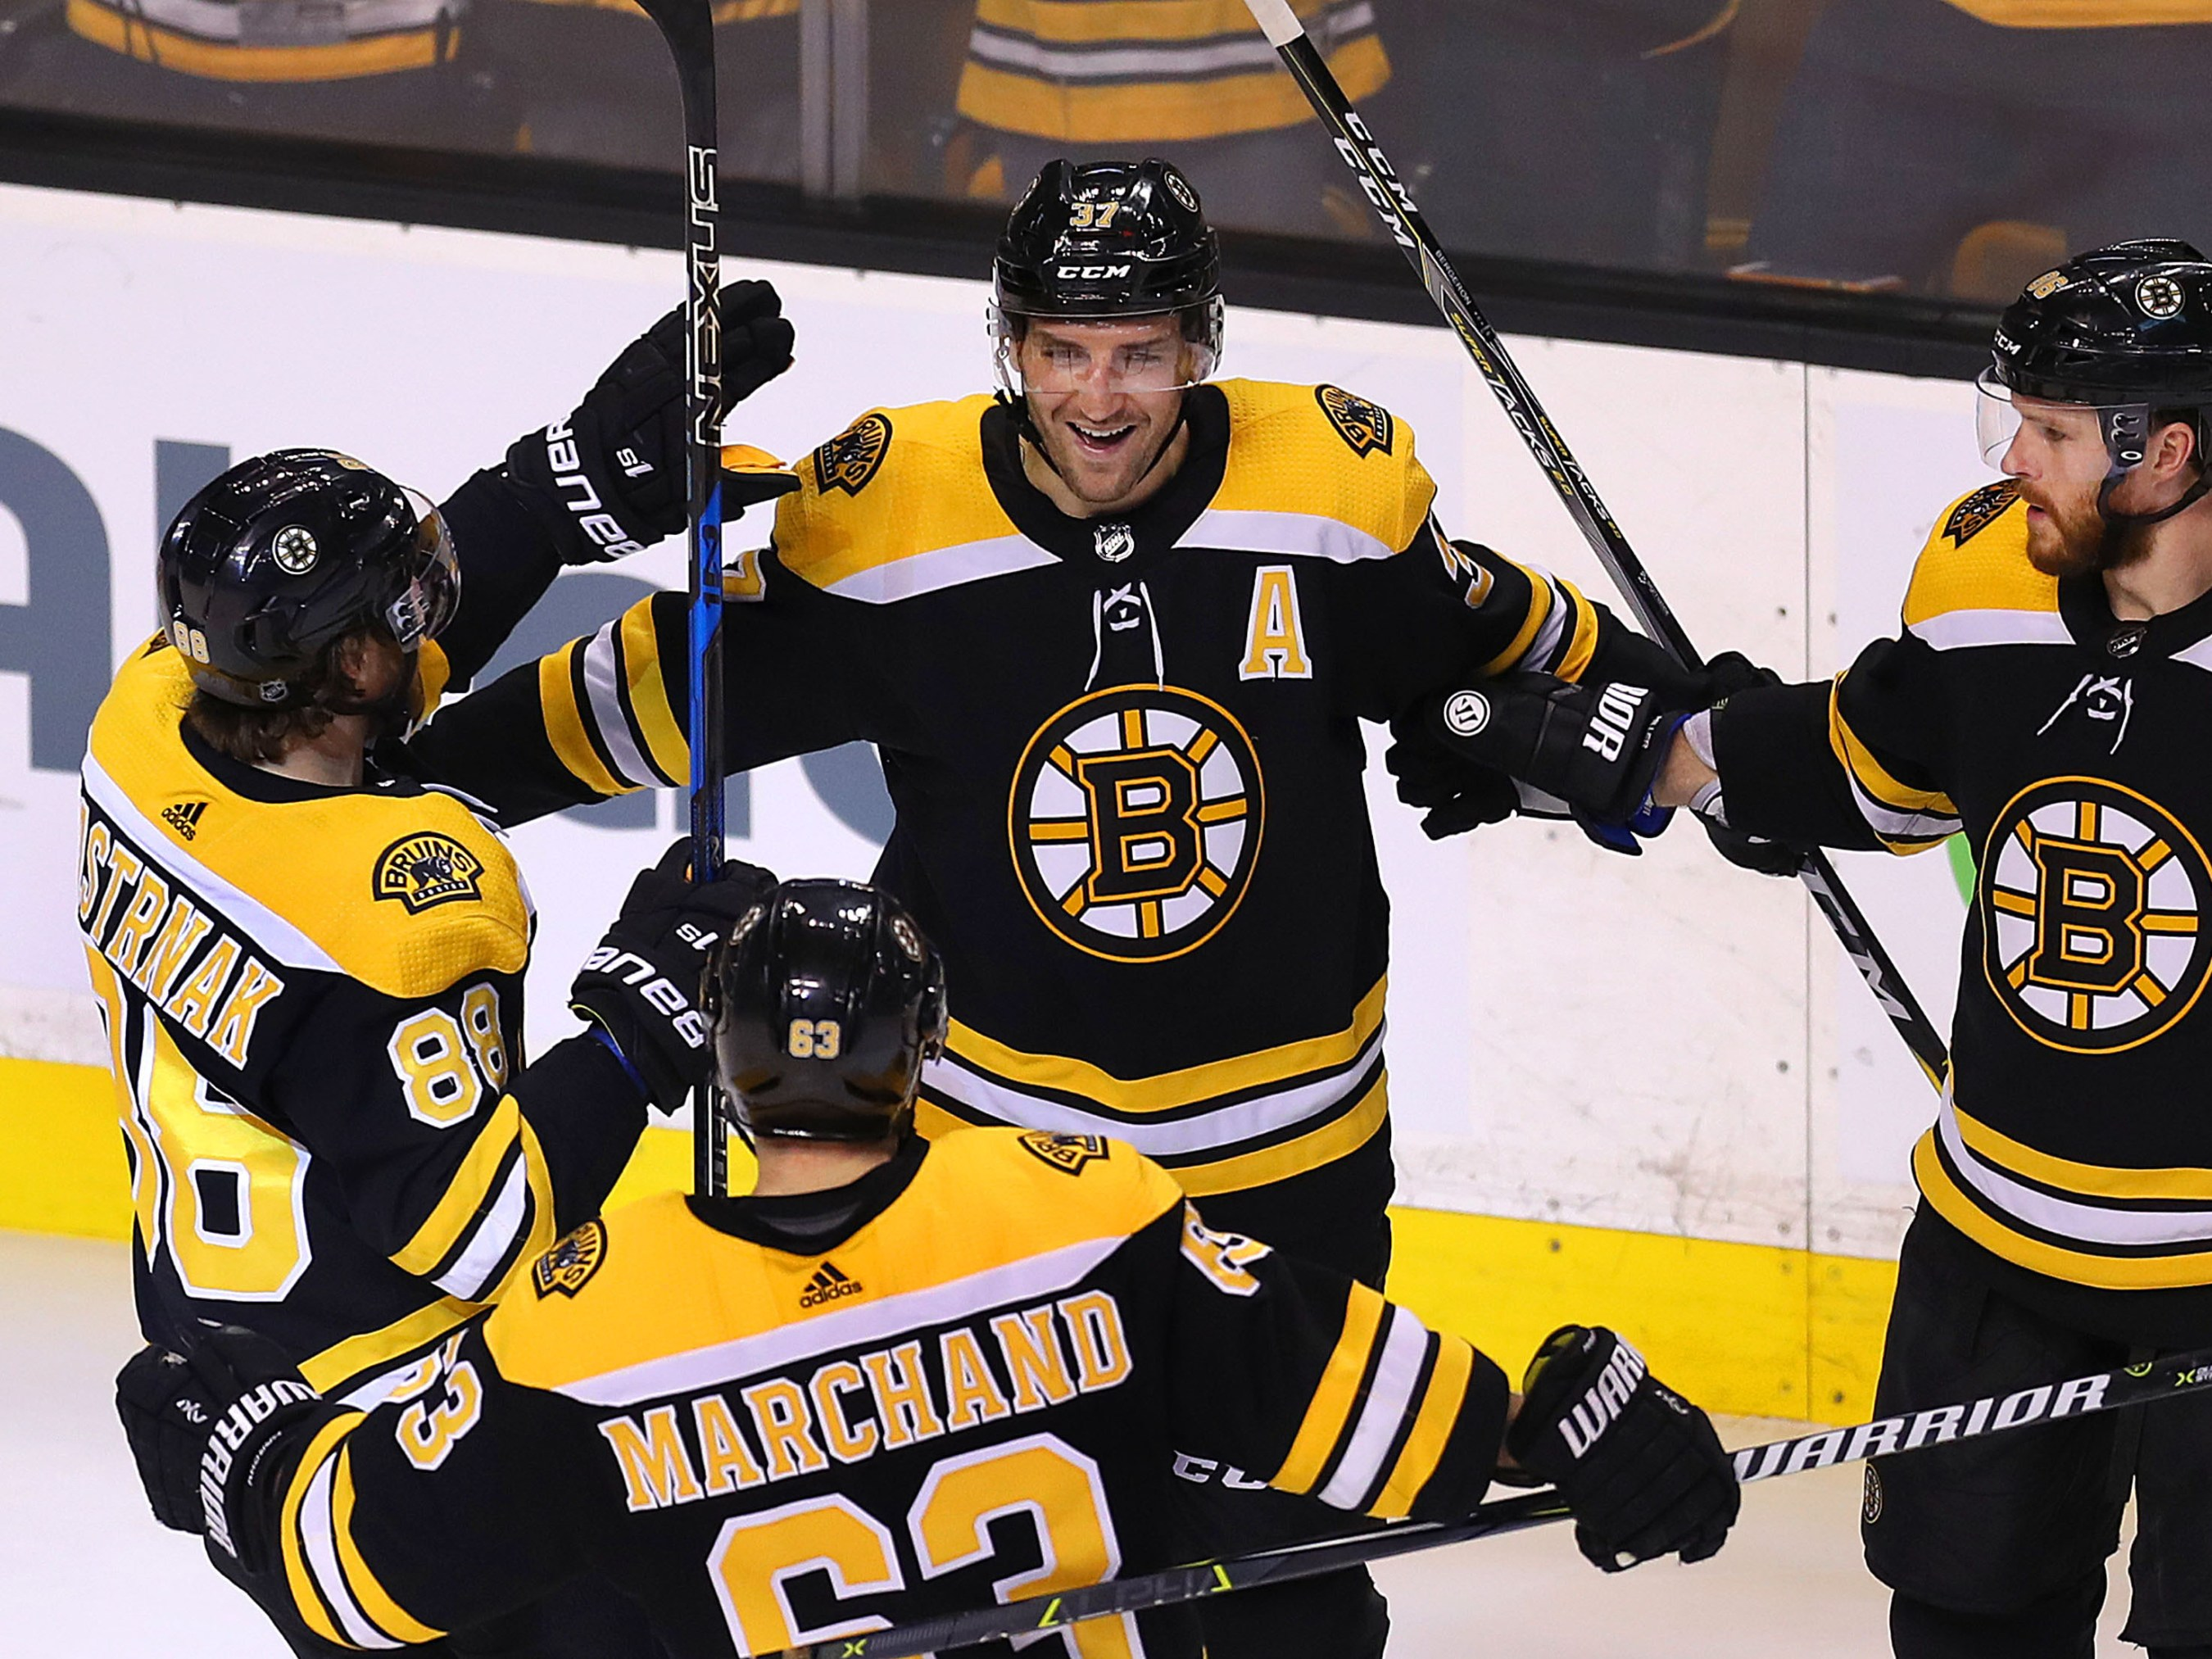 Bruins Hd Wallpaper One More Reason To Raise A Fist At Boston Sports The